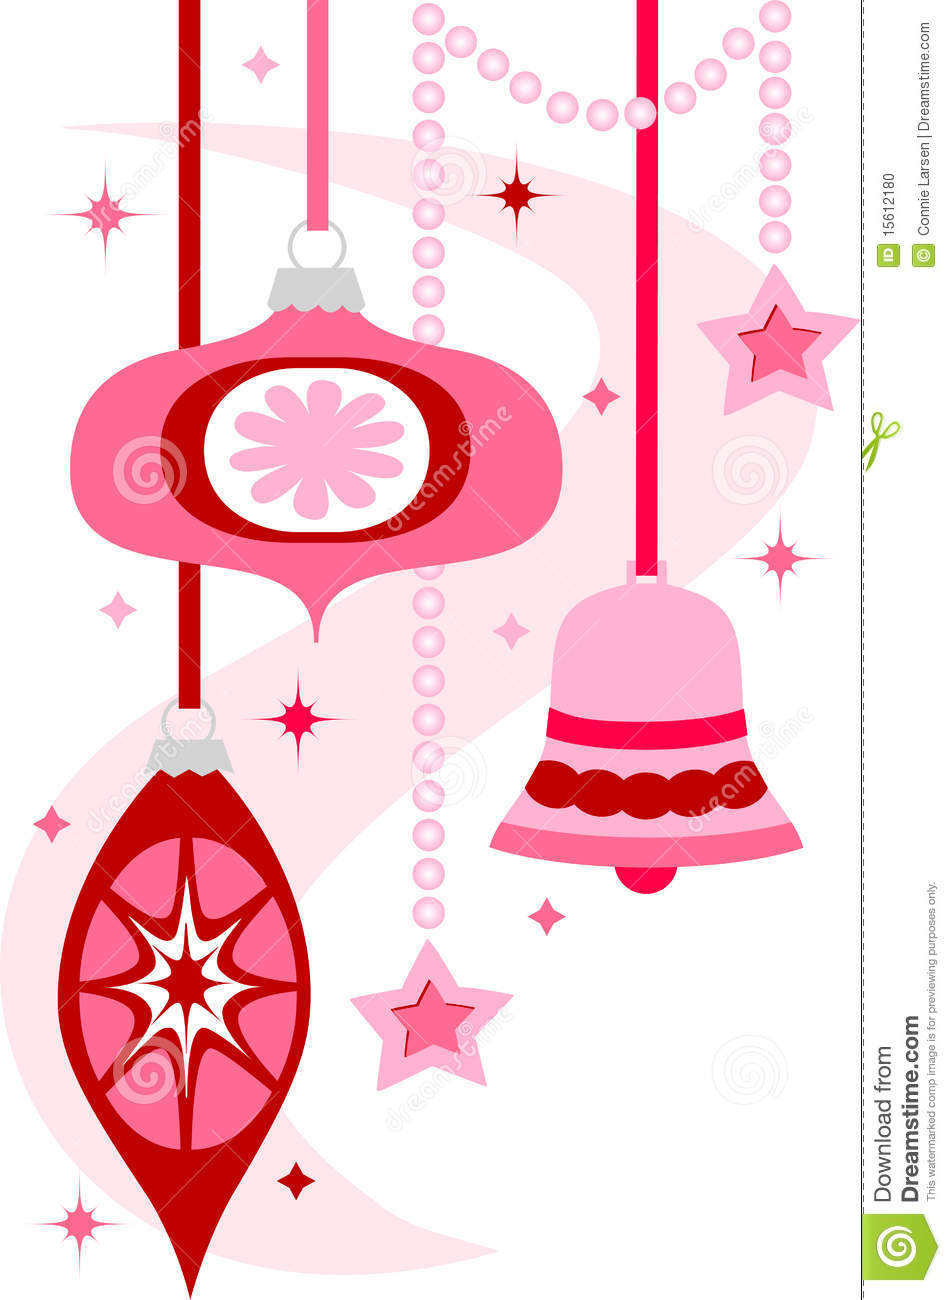 951x1300 Collection Of Vintage Christmas Ornaments Clip Art High